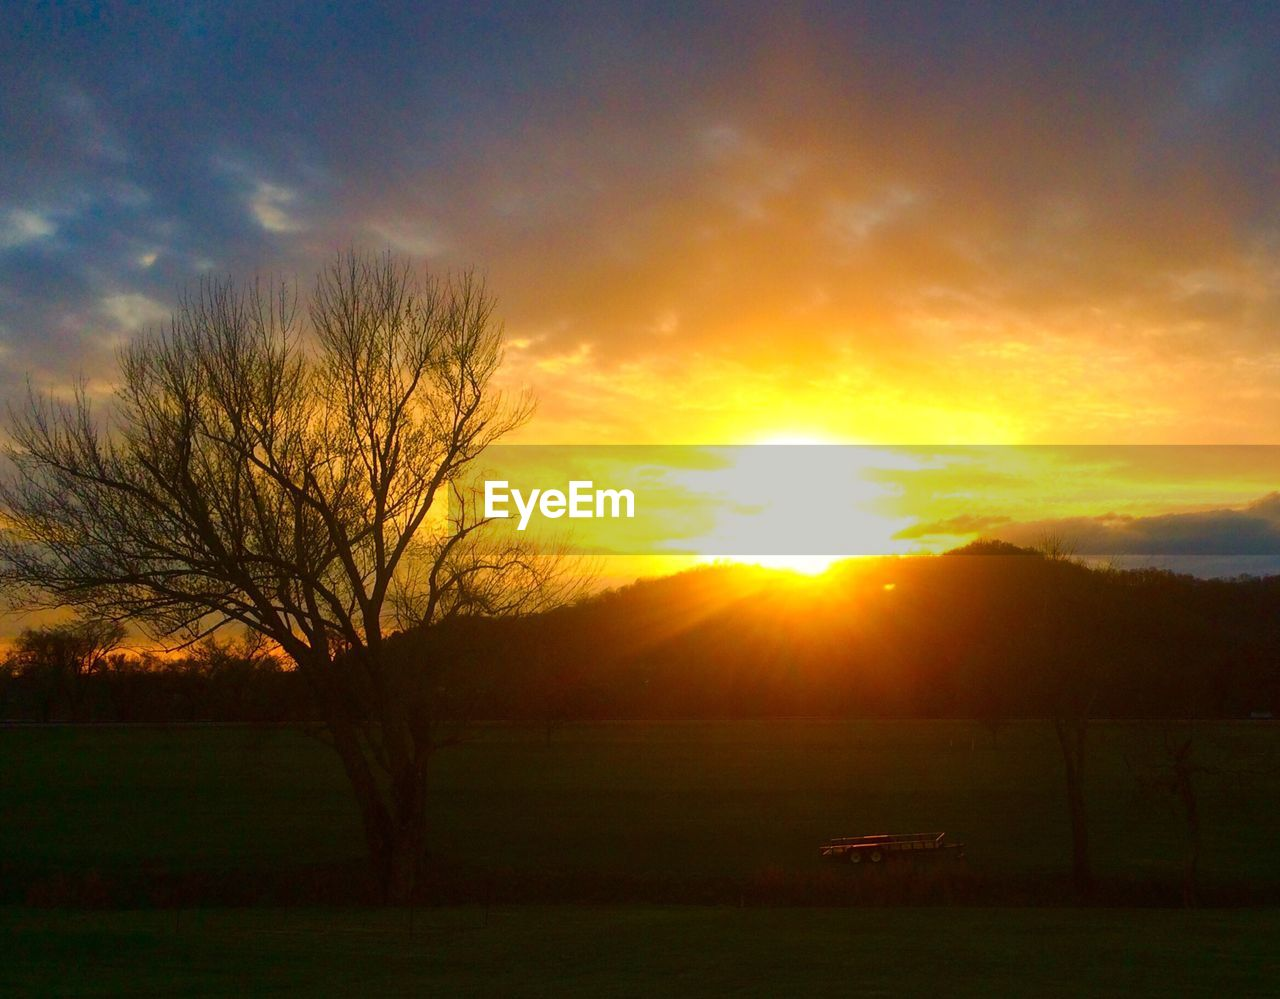 sunset, tranquility, tranquil scene, beauty in nature, scenics, nature, sun, sky, tree, landscape, silhouette, no people, idyllic, sunlight, cloud - sky, bare tree, outdoors, grass, day